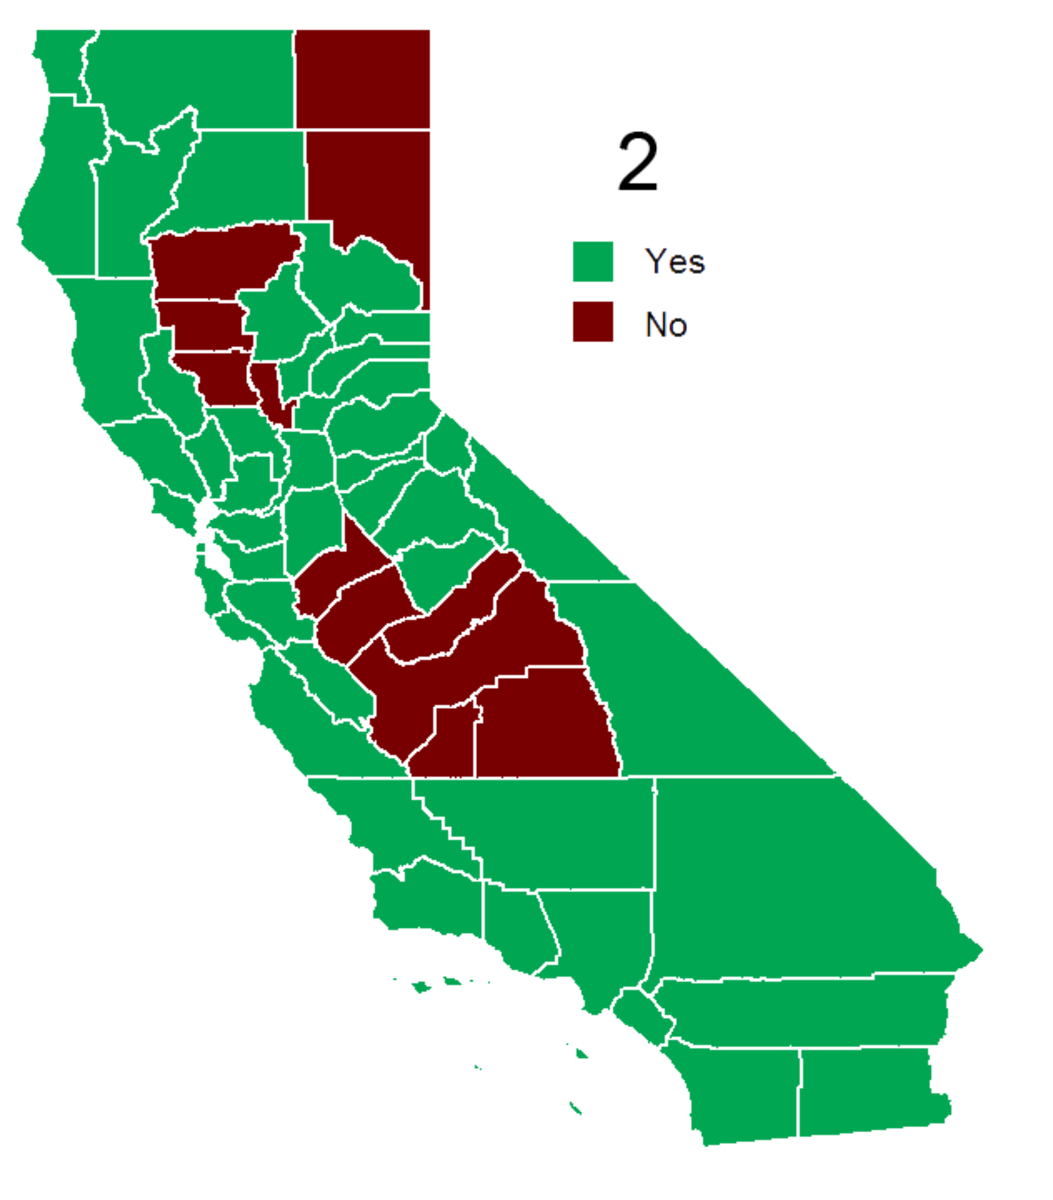 Prop 2 electoral results by county in California. (Photo: Wikimedia Commons)